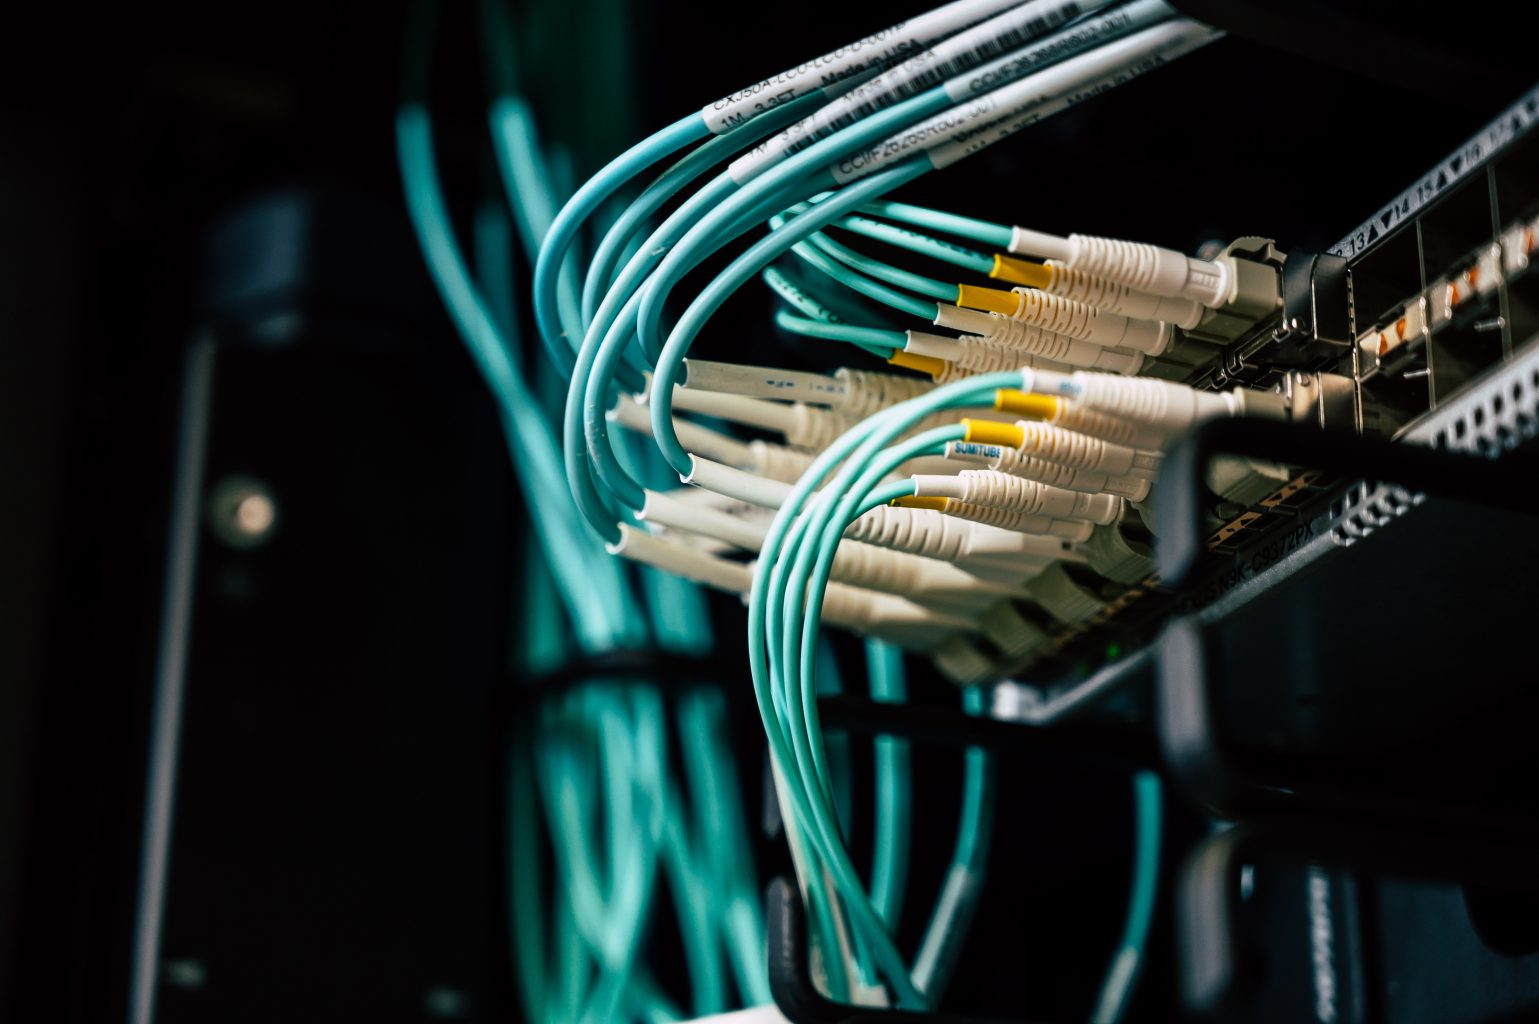 white-and-blue-cables-2881229